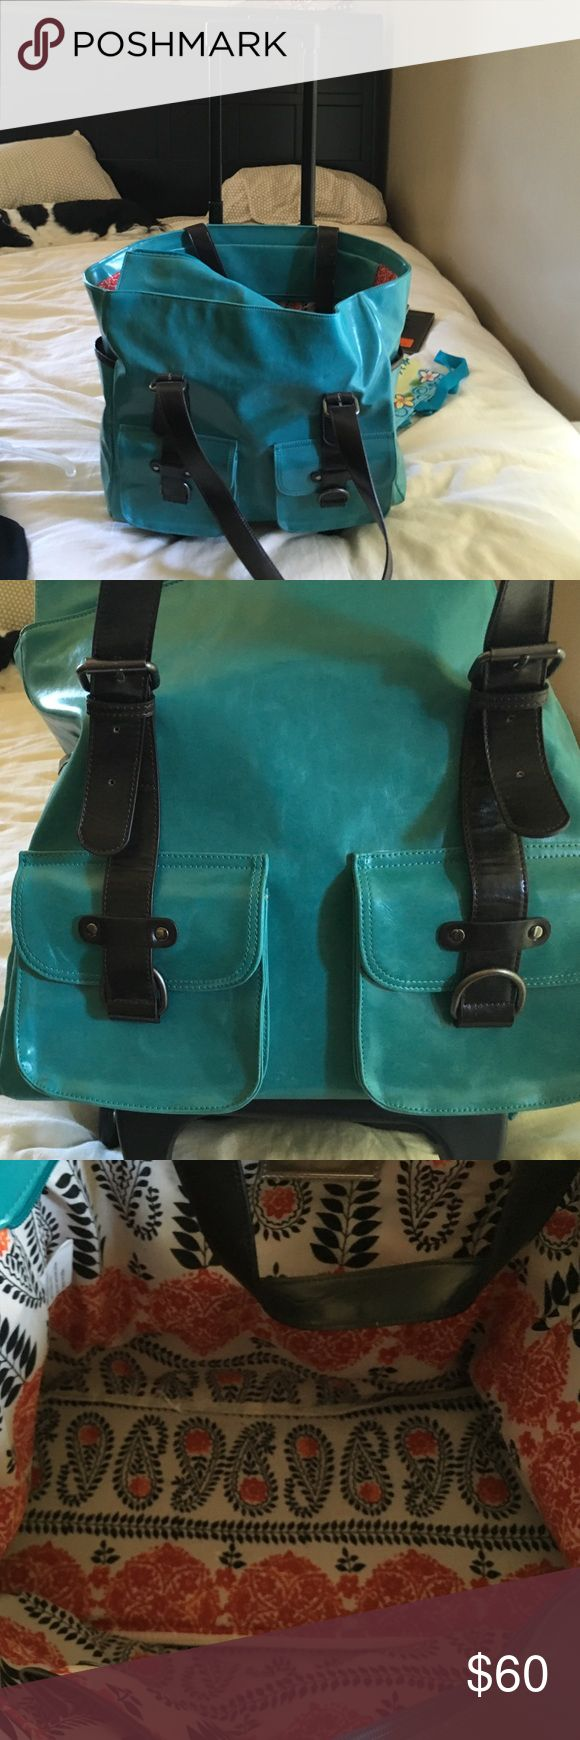 Rolling computer bag Teal green. 2 pockets on front. Fits computer and much more! Bags Laptop Bags